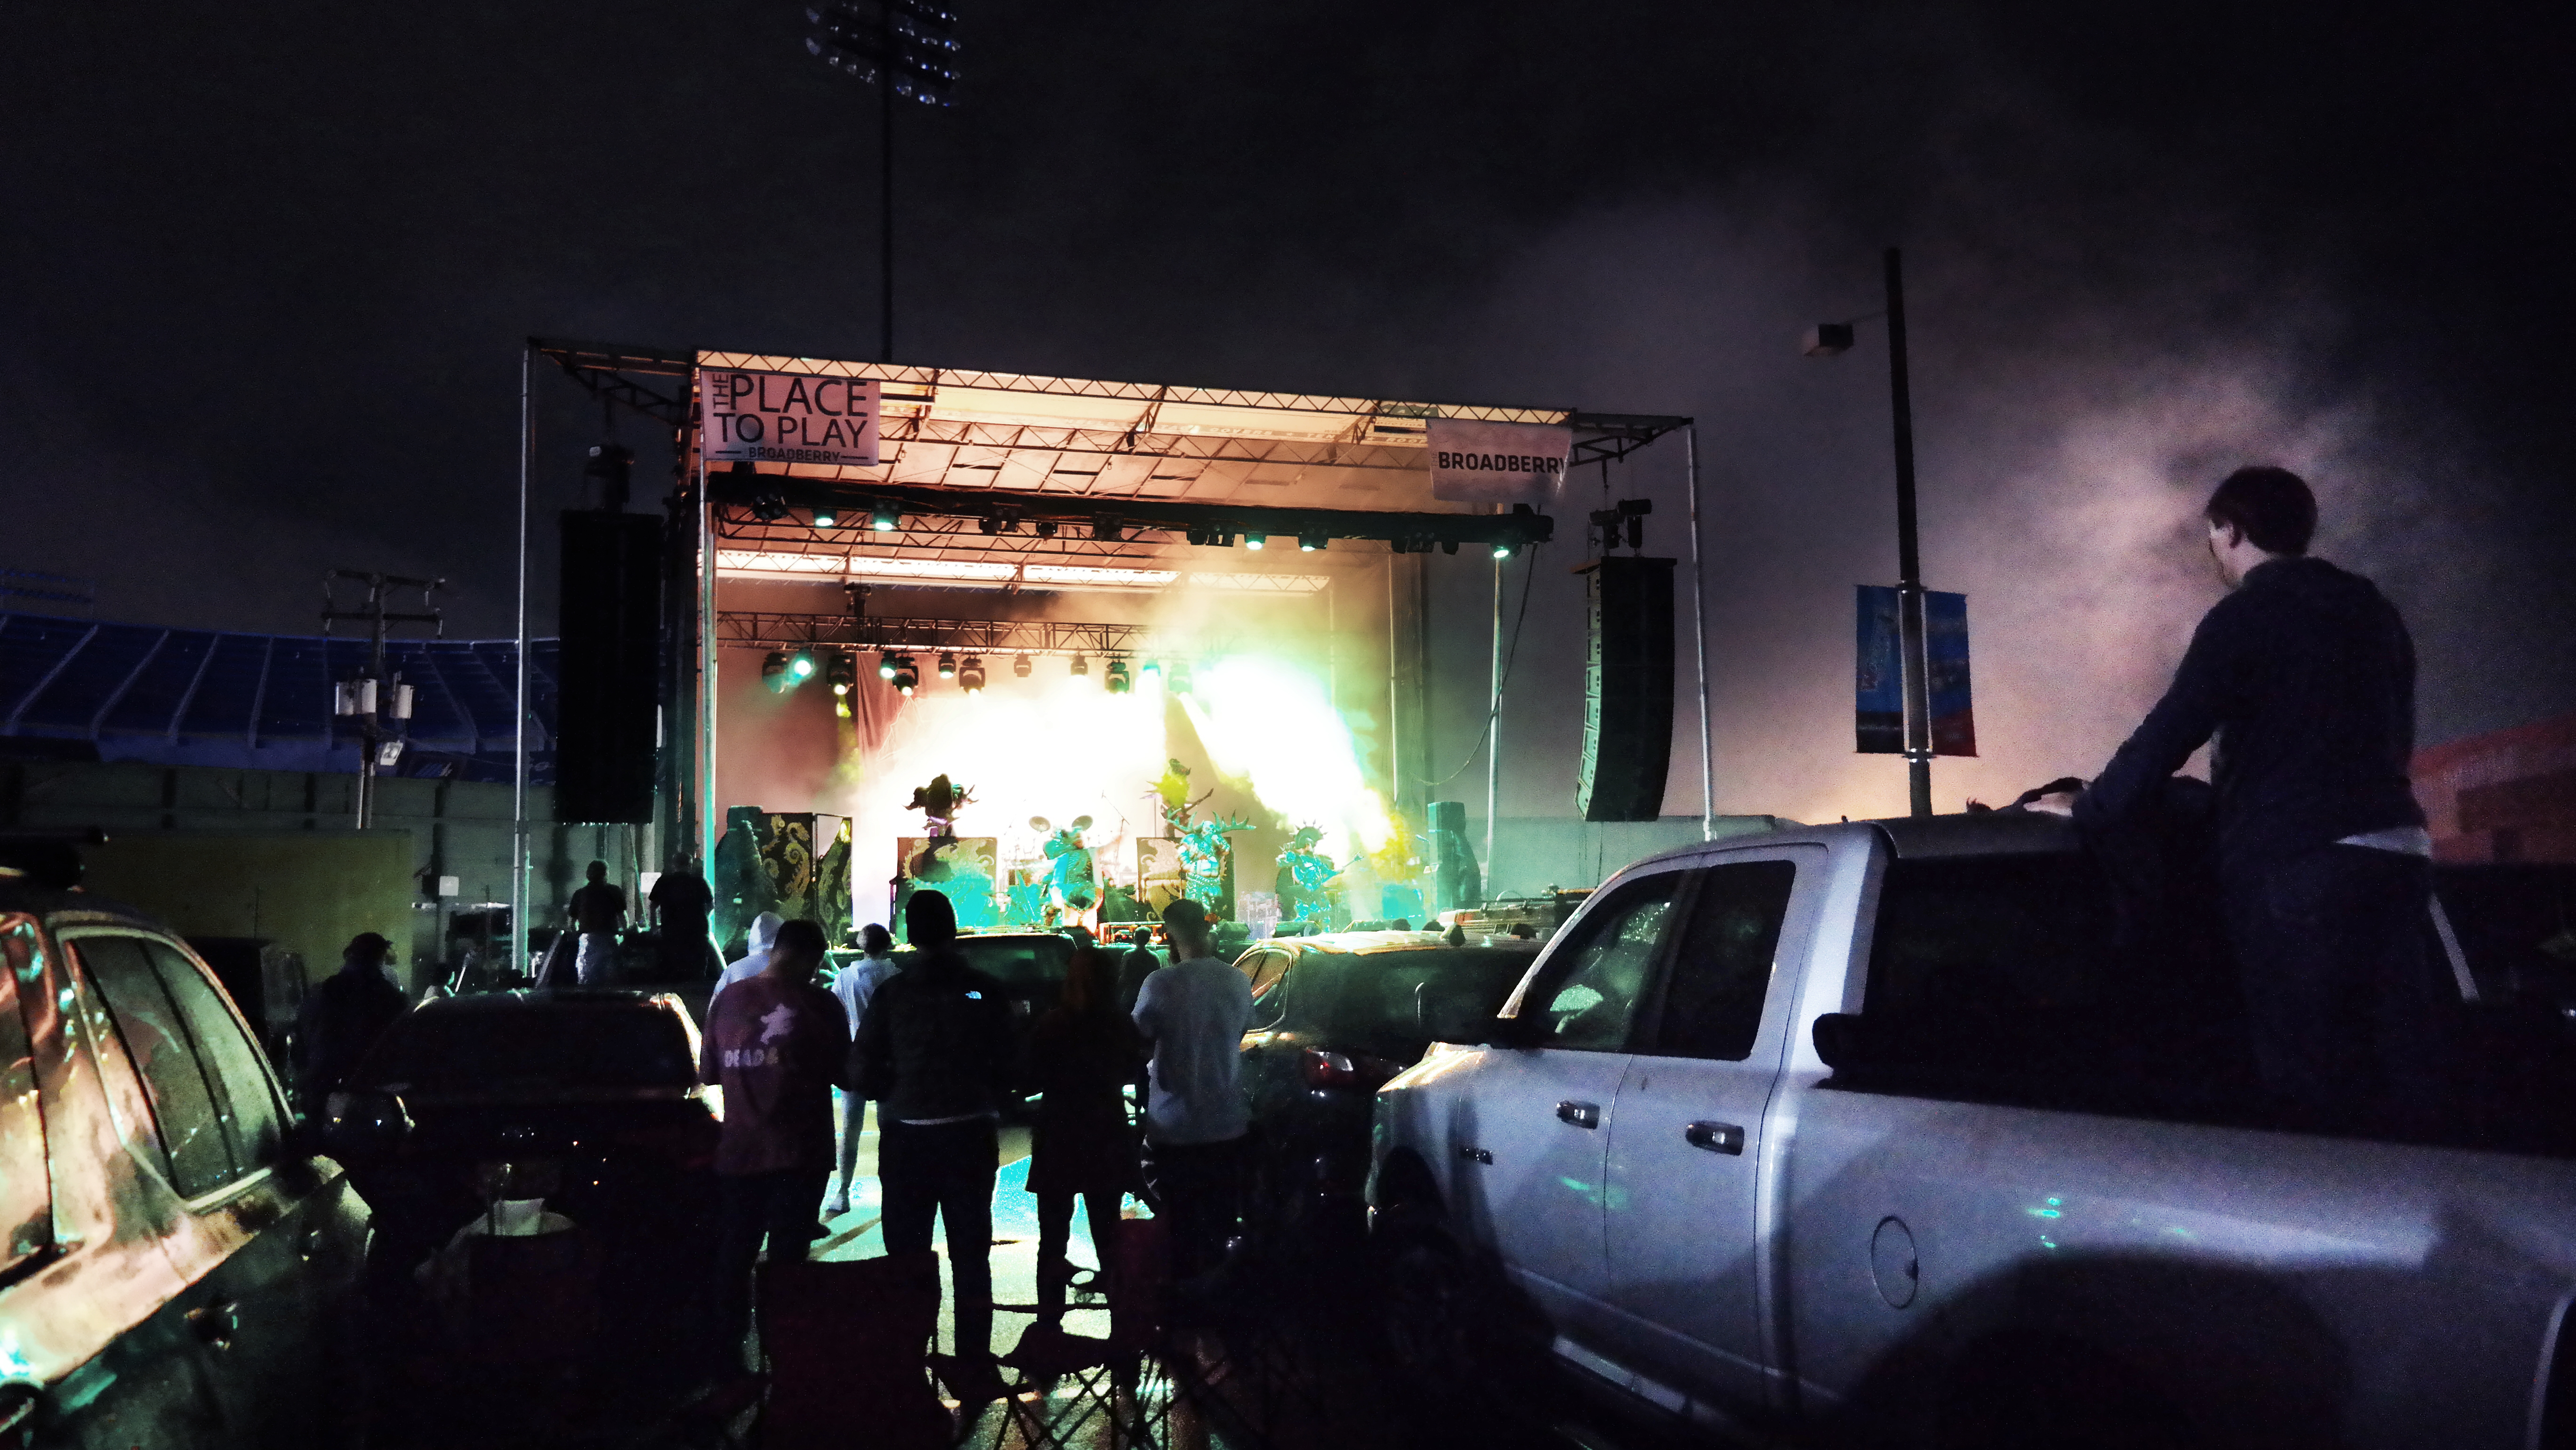 A brightly lit outdoor stage with cars and people in front of it during an evening concert.